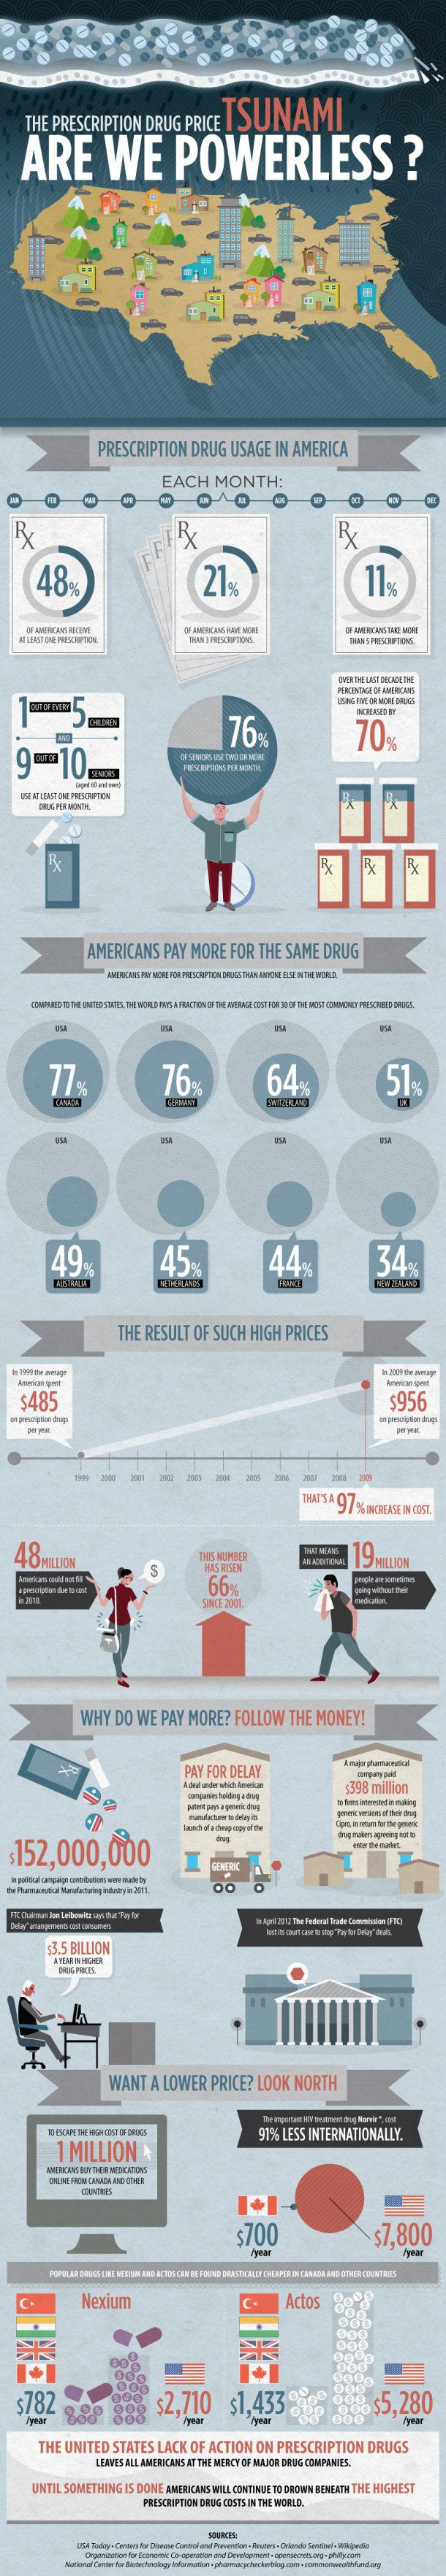 The Prescription Drug Price Tsunami